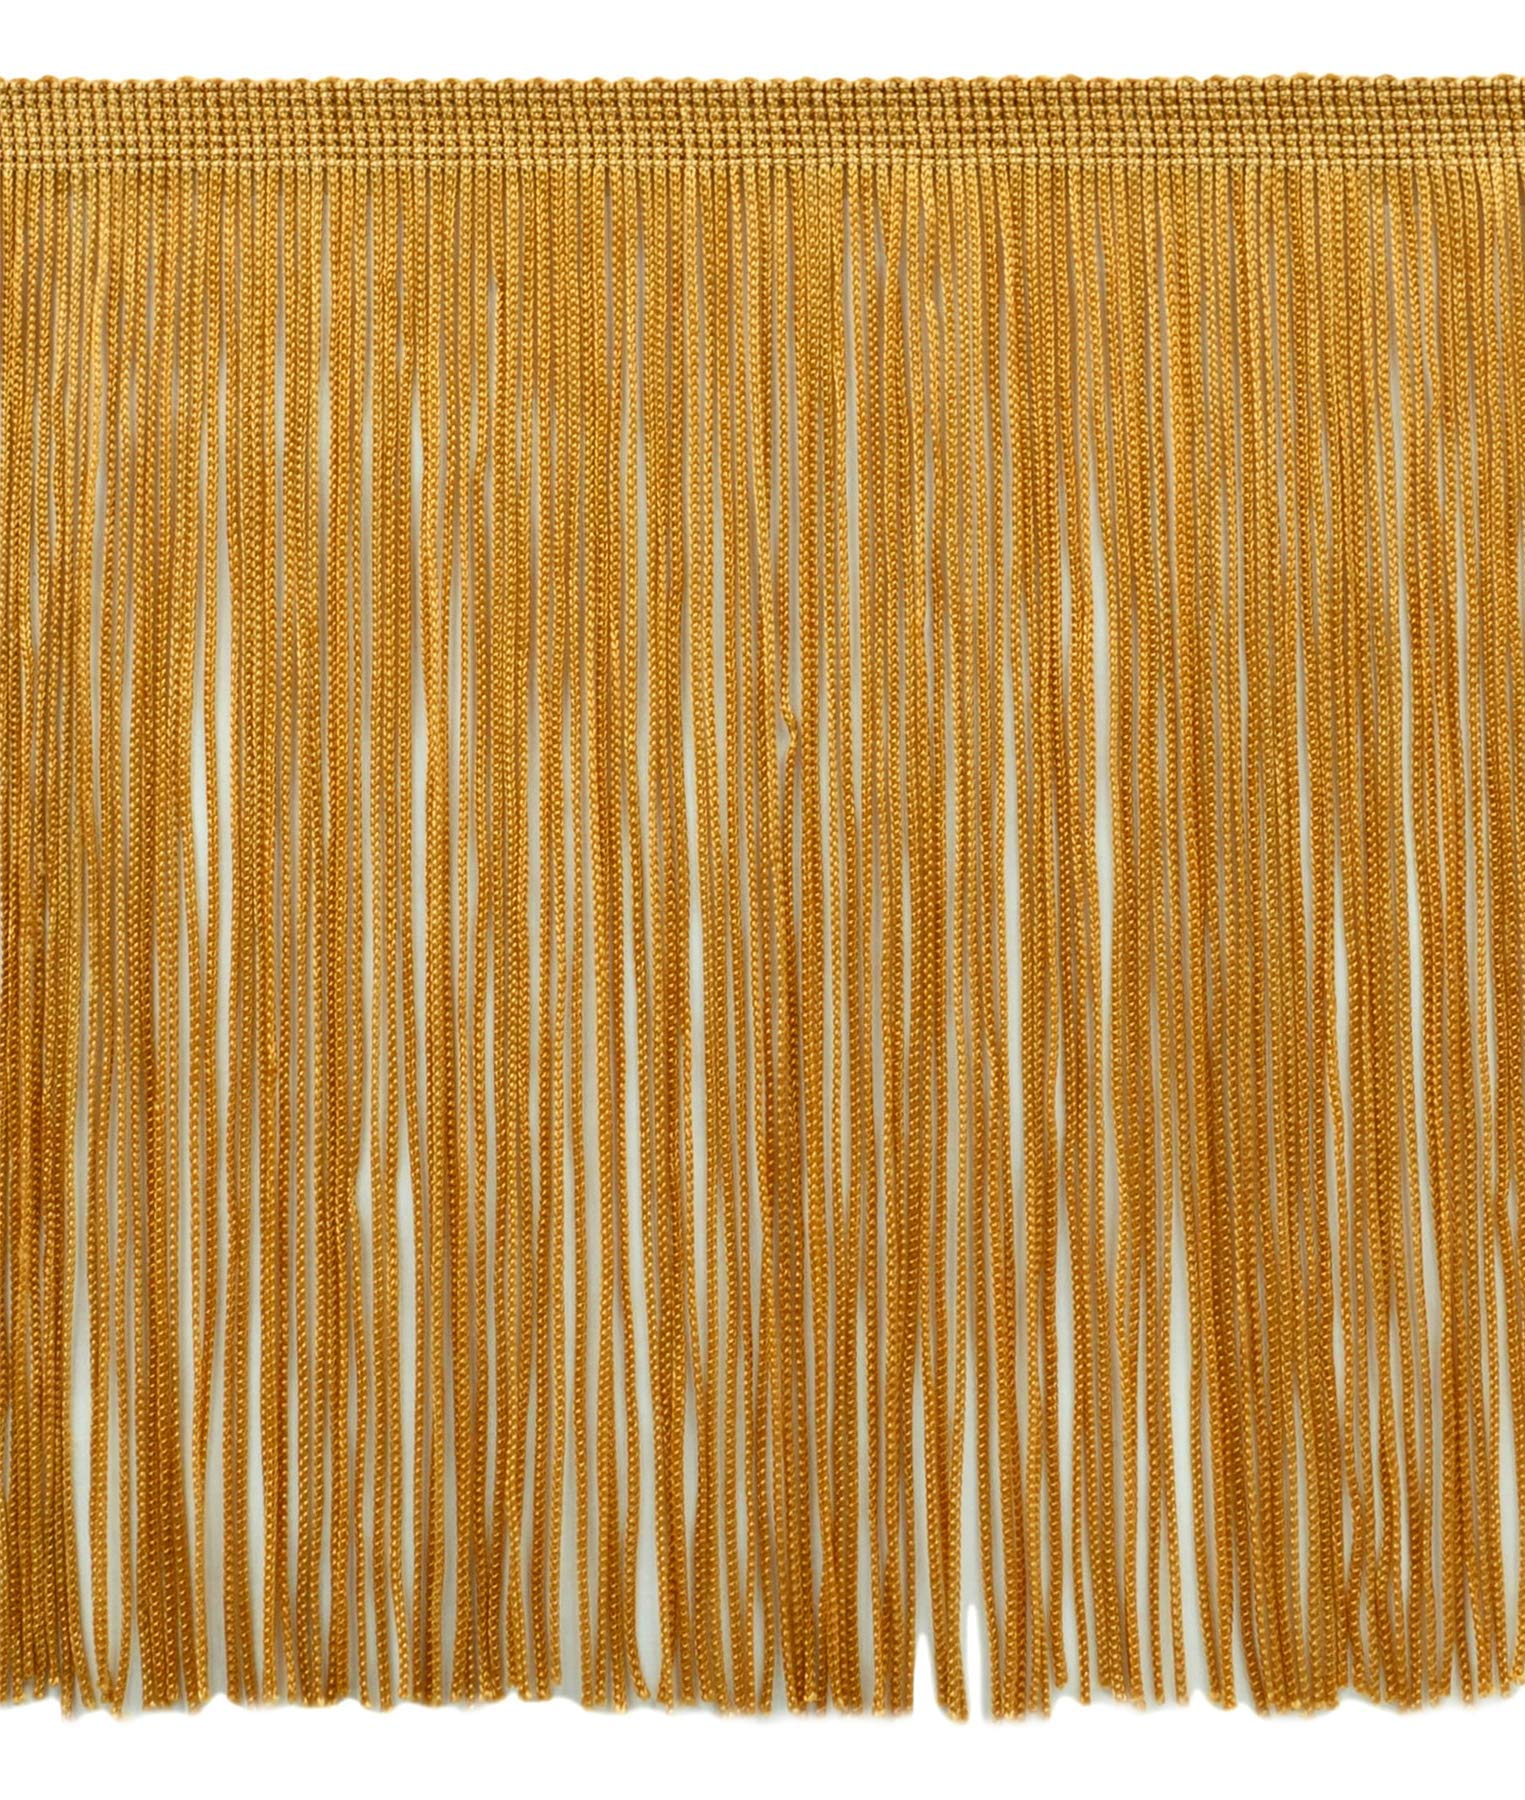 DÉCOPRO 11 Yard Value Pack of 8 Inch Chainette Fringe Trim, Style# CF08 Color: Gold - C4 (32.5 Feet / 10M) by DÉCOPRO